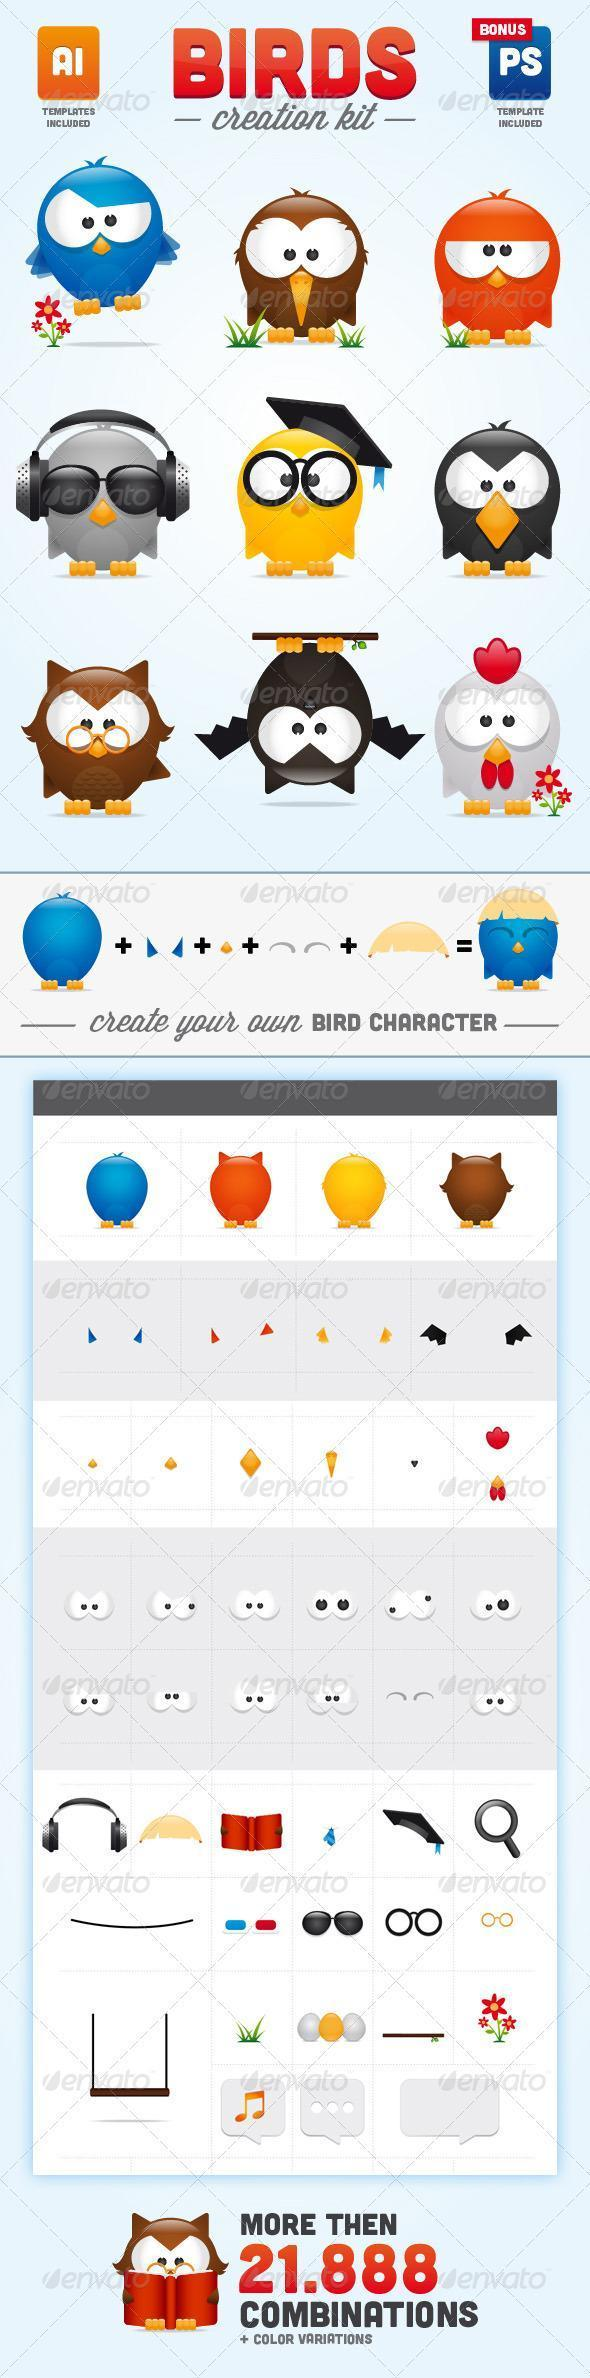 Birds Cartoon Character Creation KIt